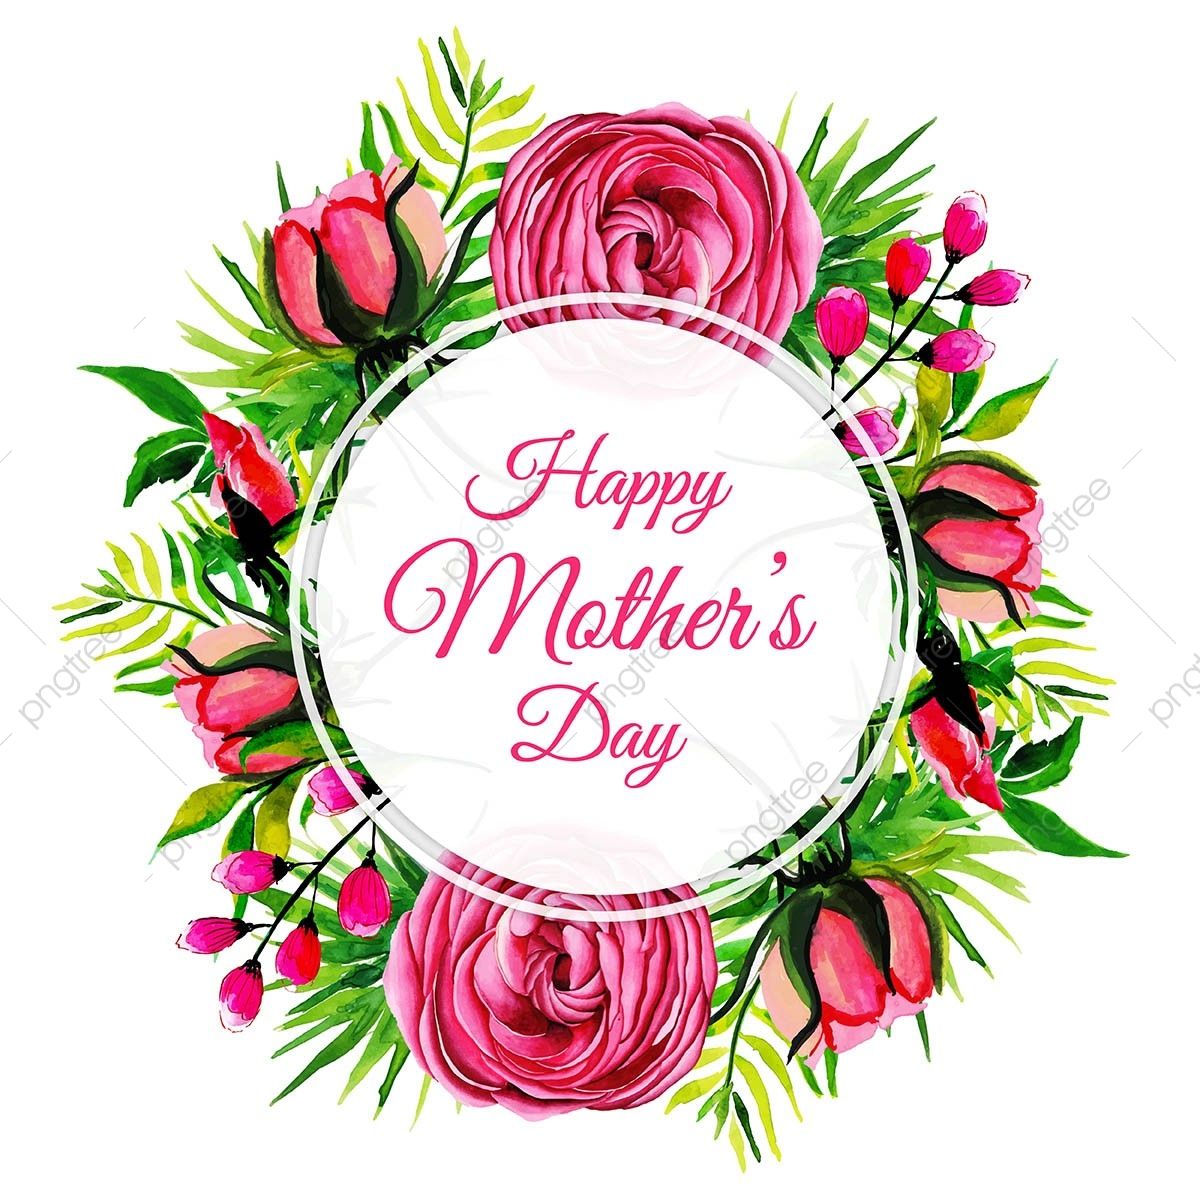 Watercolor Happy Mothers Day Floral Frame Background.